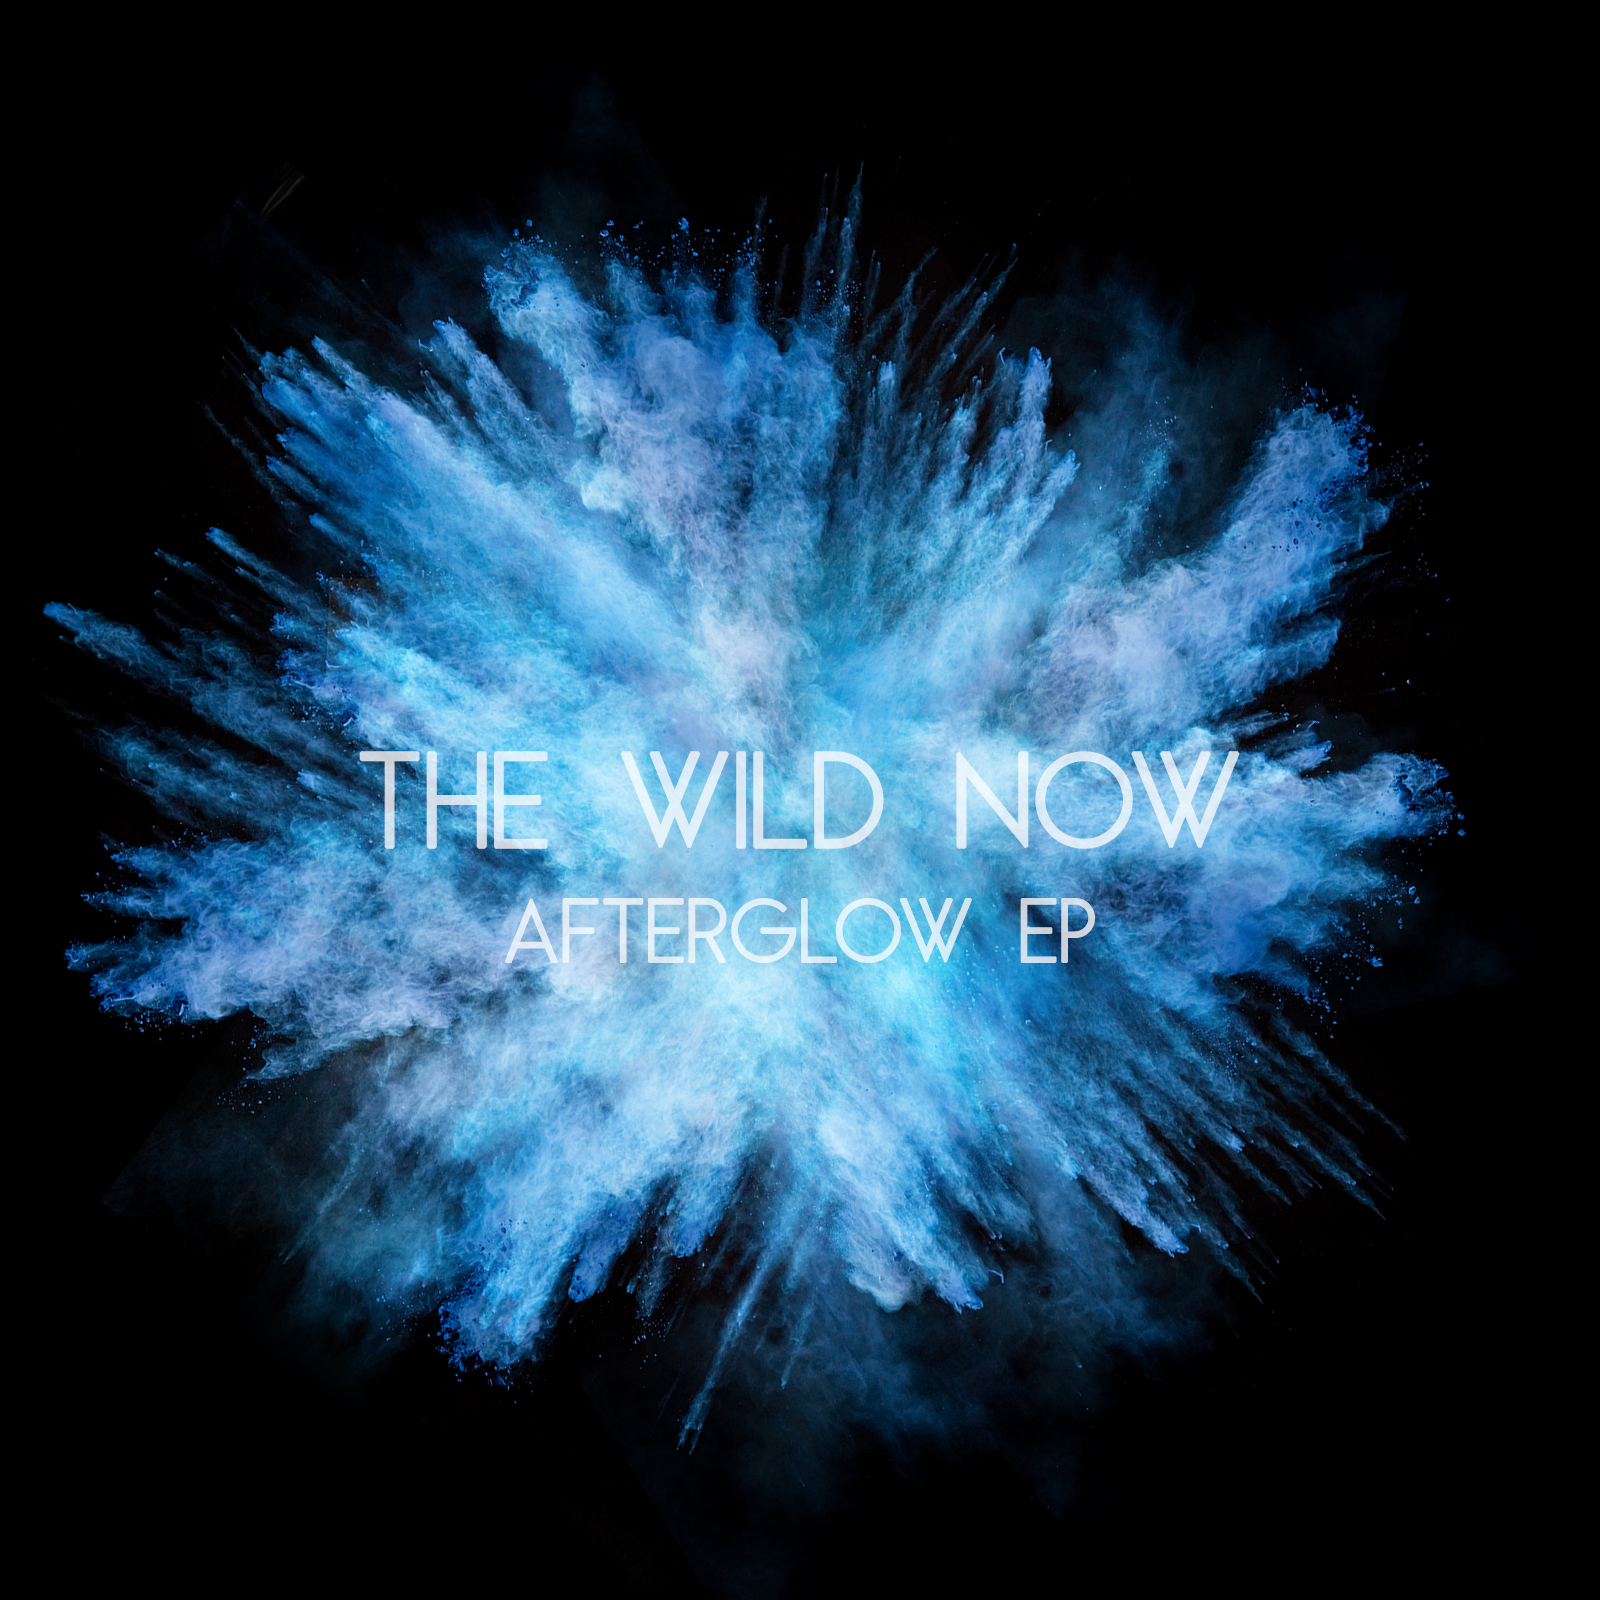 the wild now - Afterglow